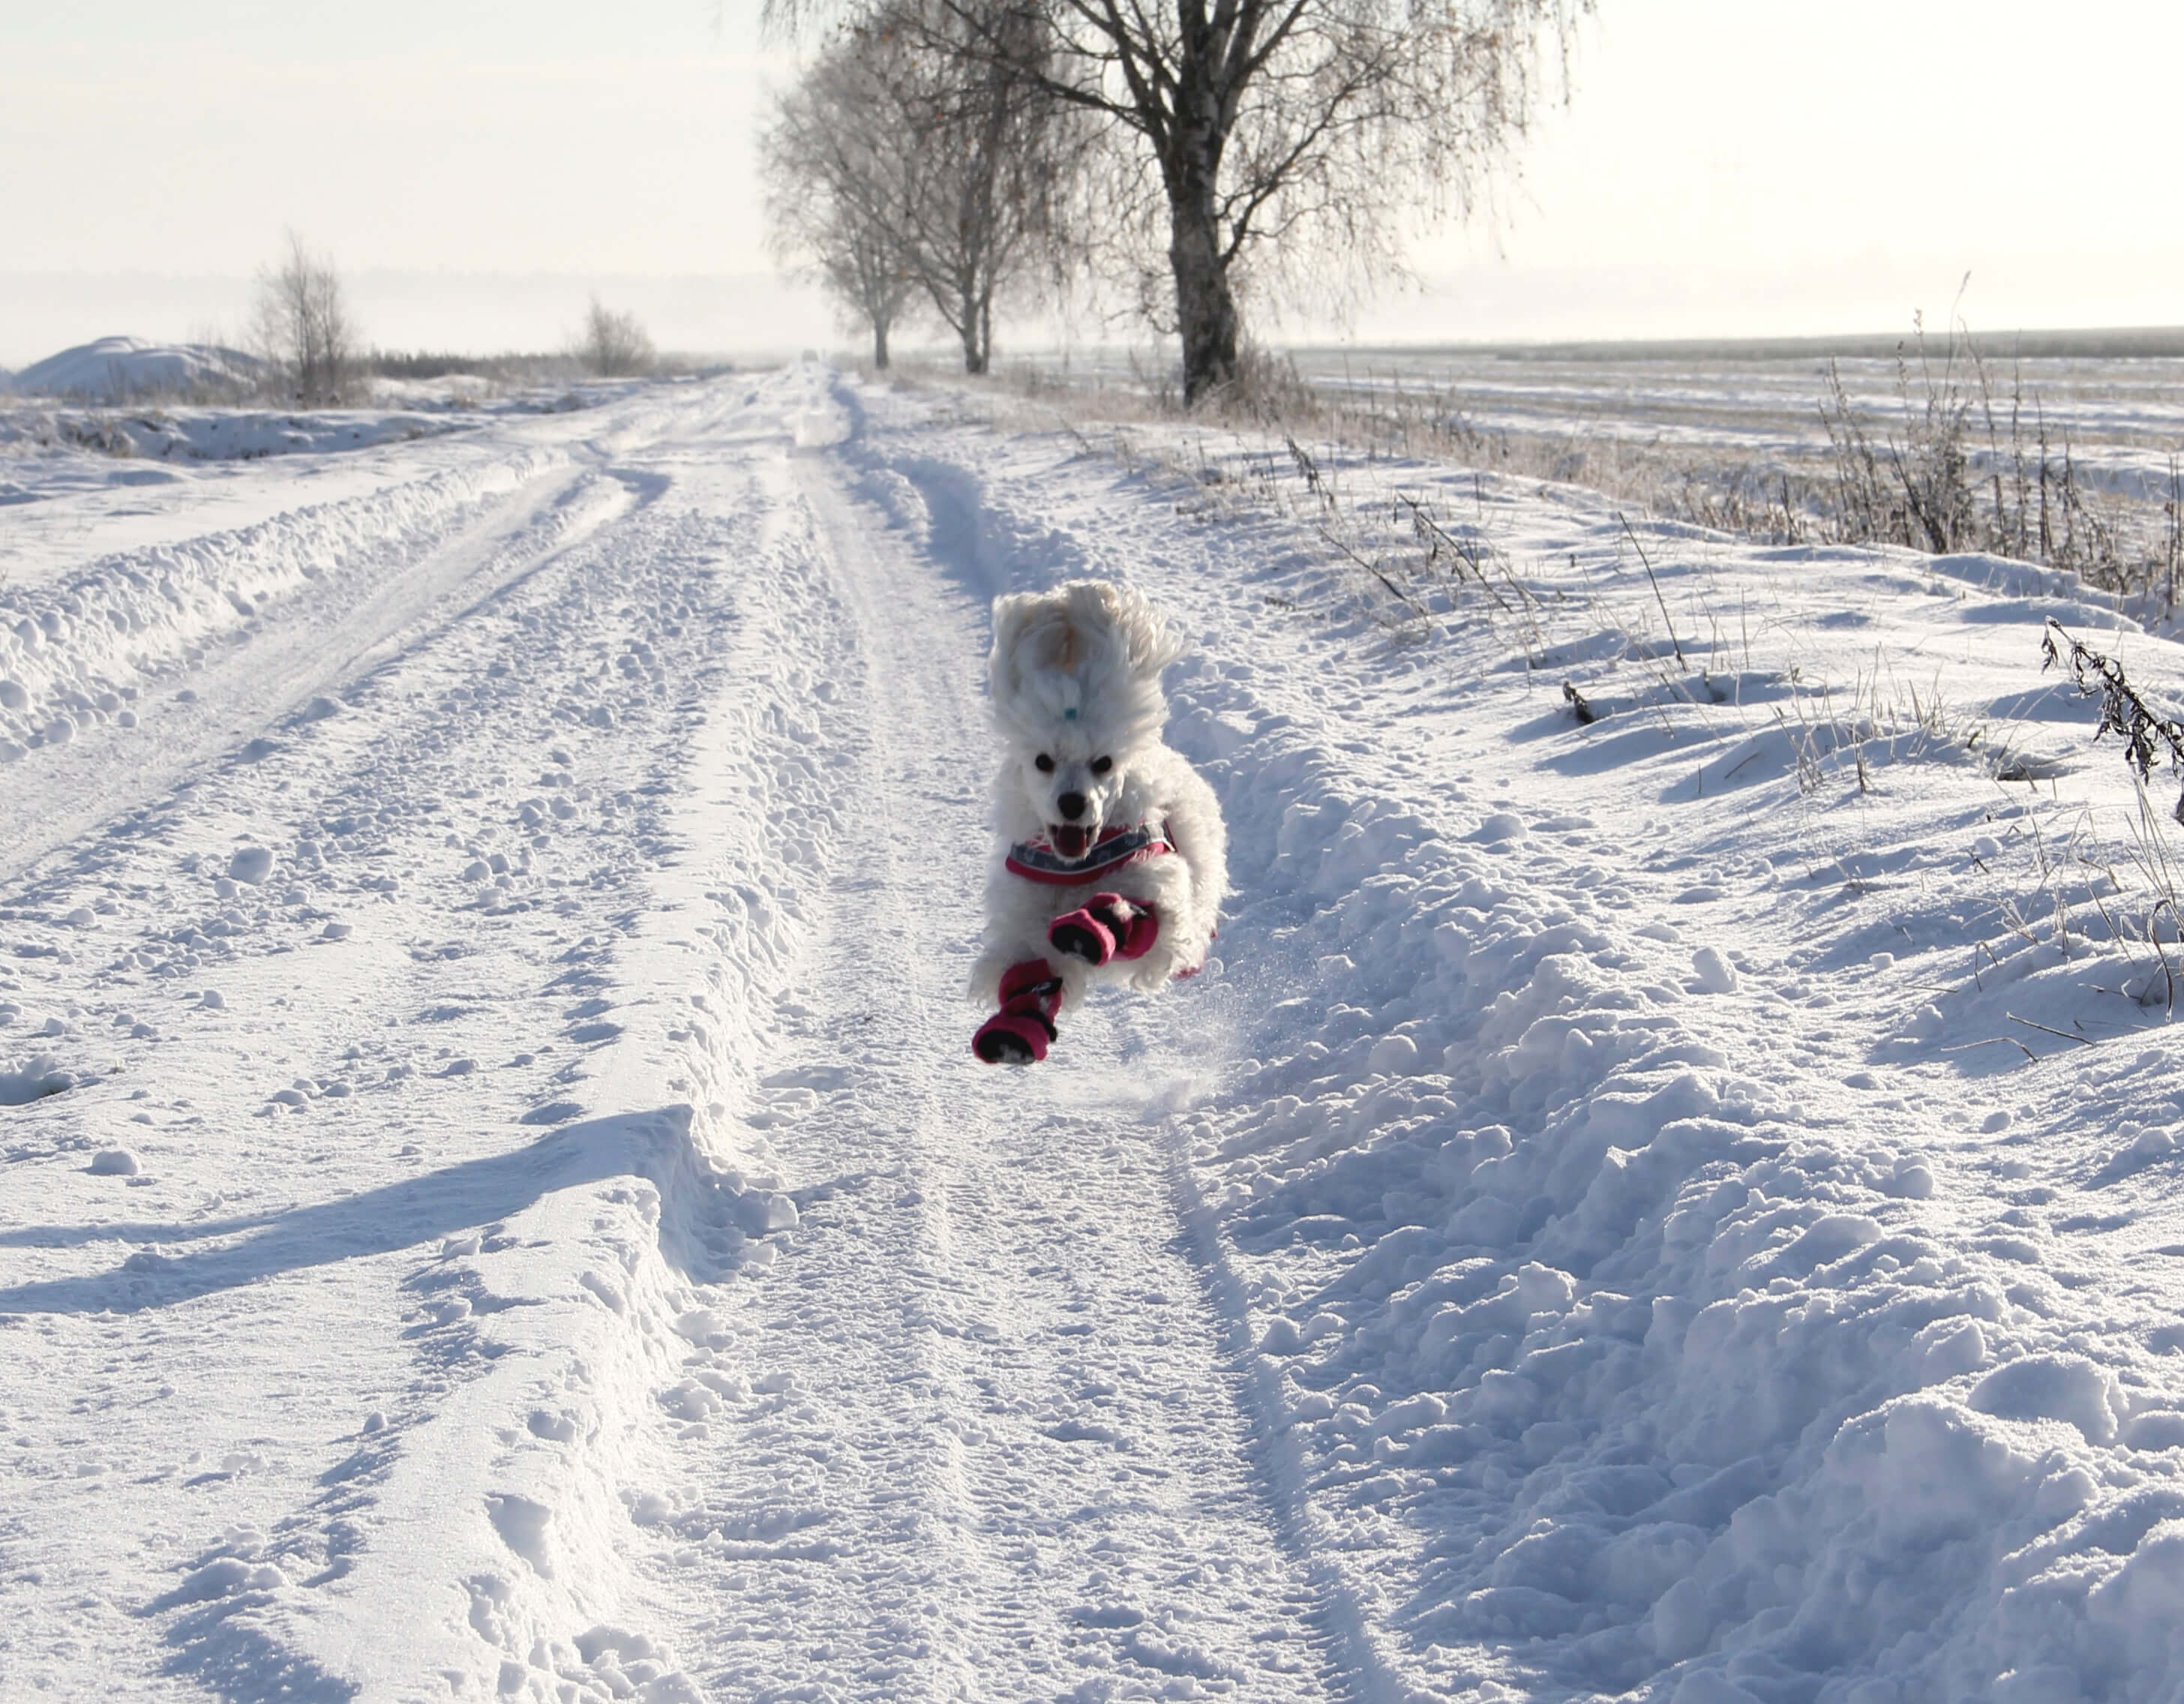 little white dog wearing hat running along snowy country road by Tuula Pekkala on unsplash at scollar.com